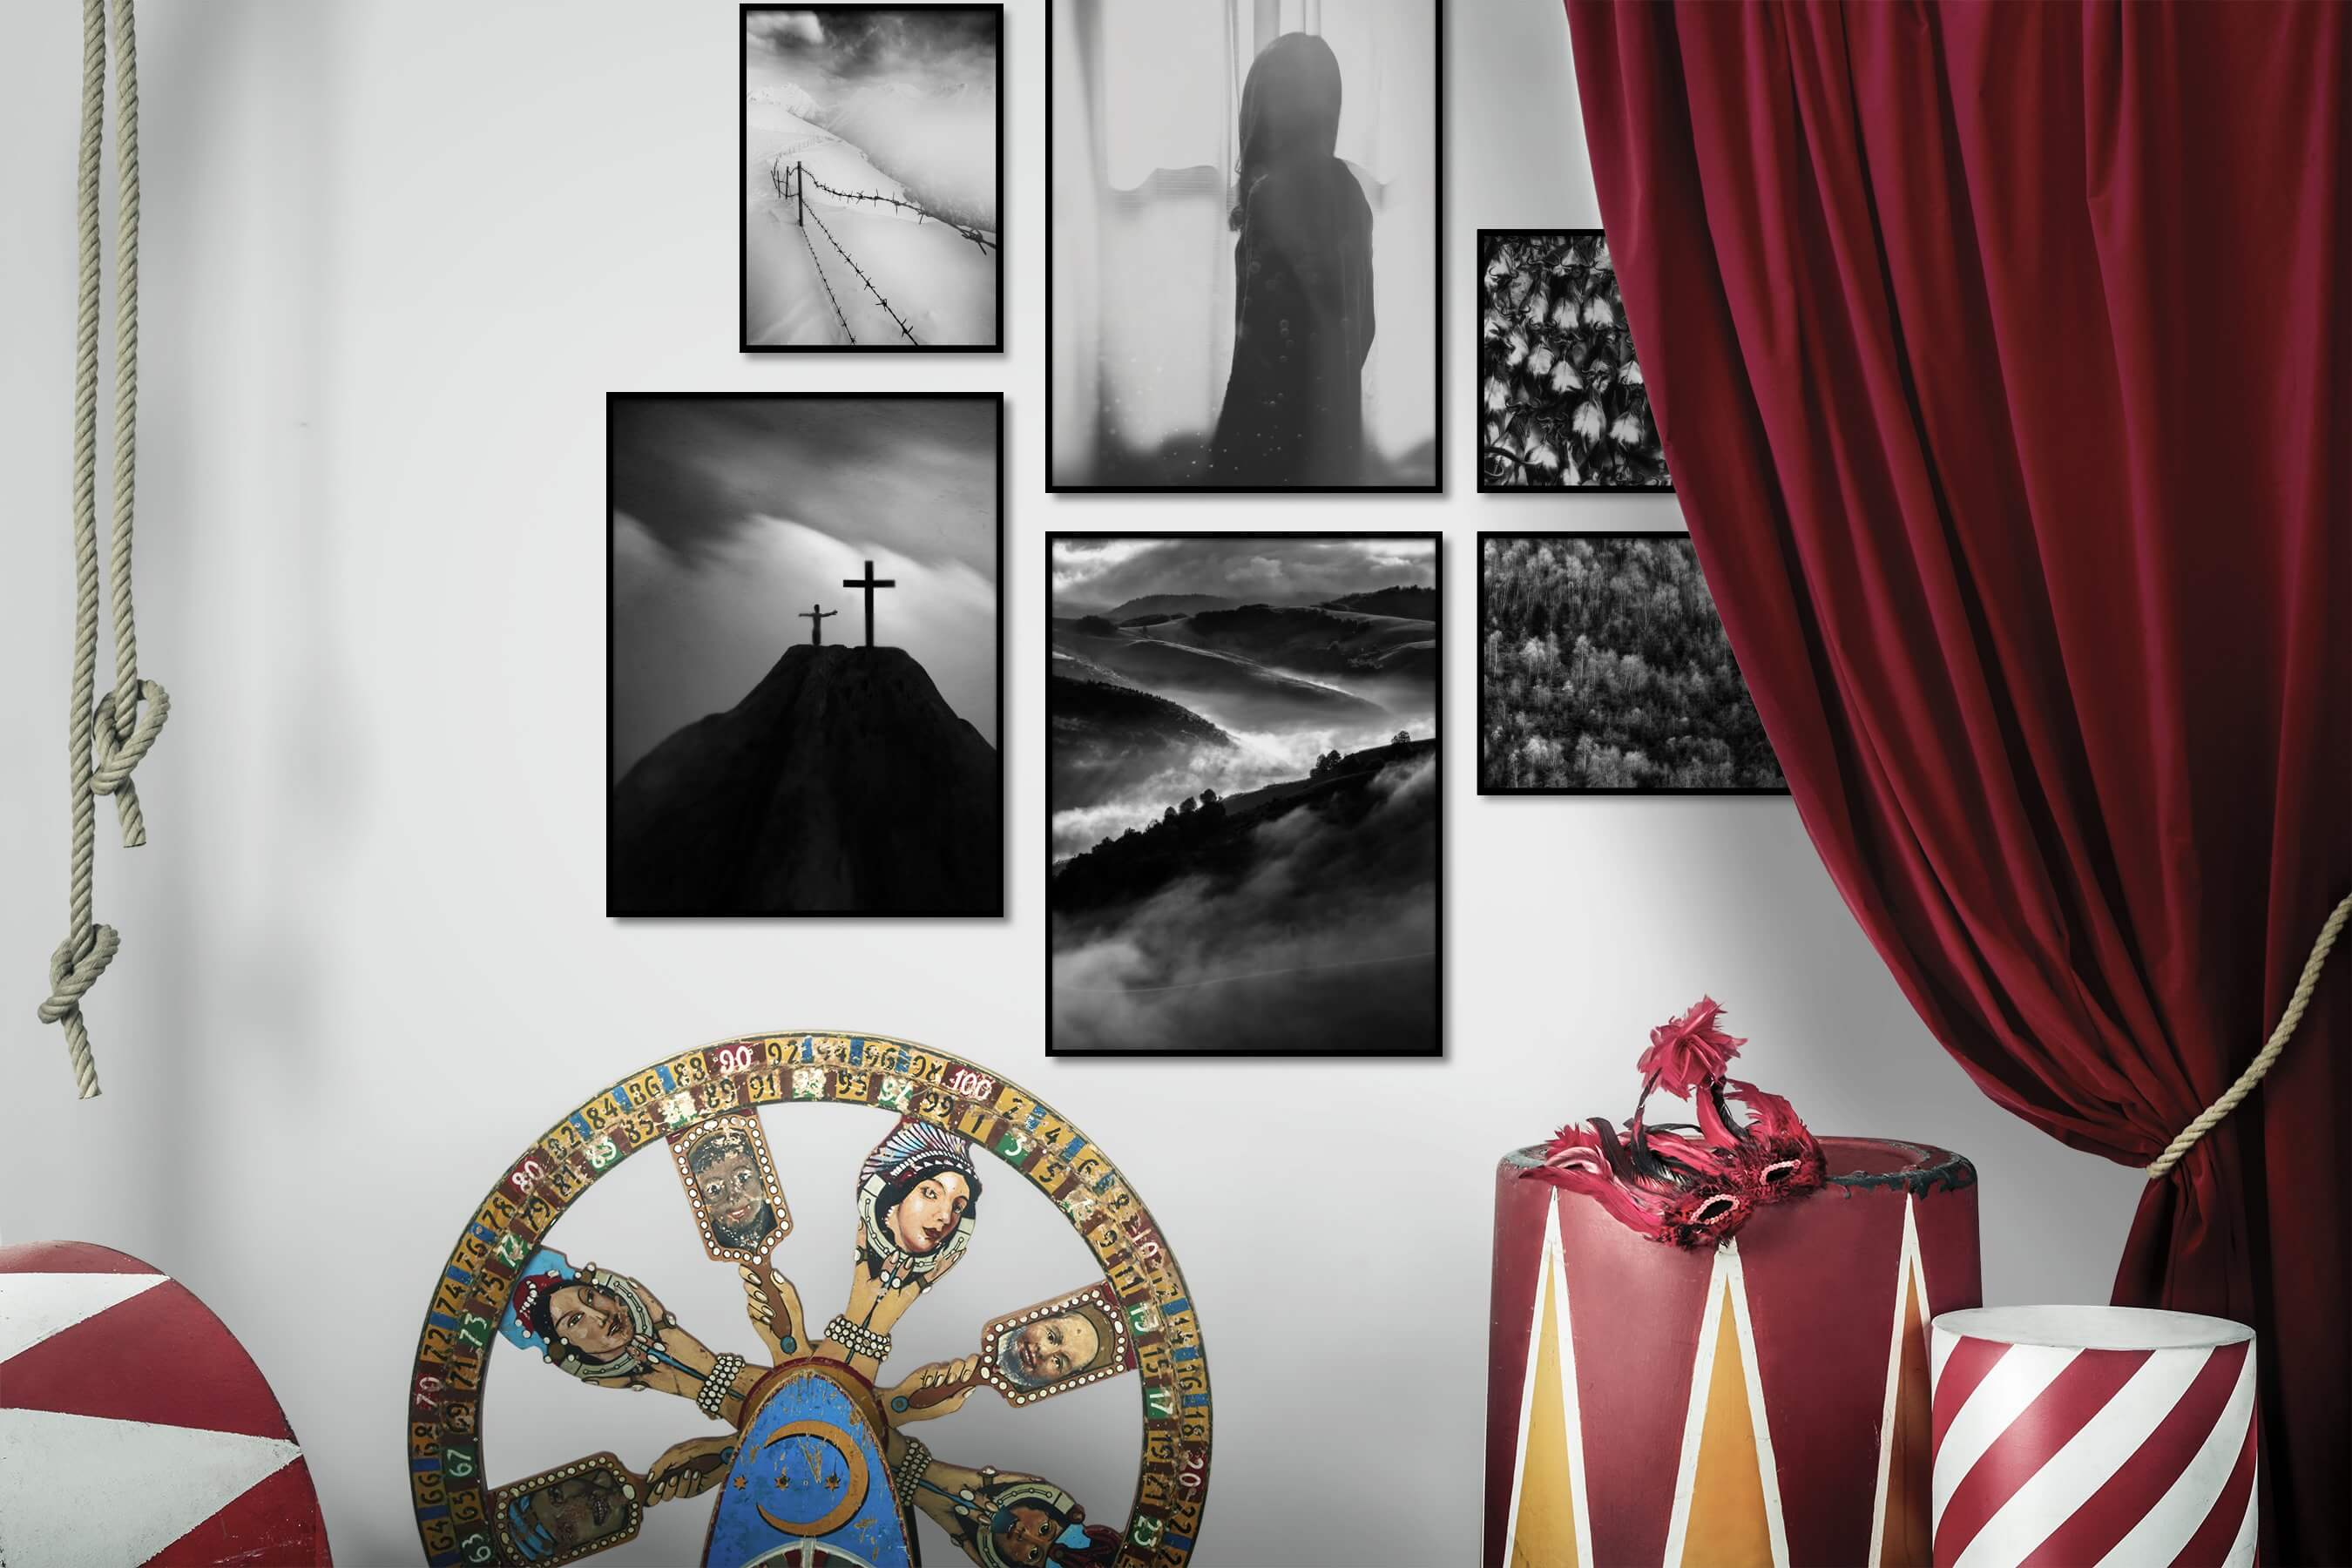 Gallery wall idea with six framed pictures arranged on a wall depicting Black & White, Nature, Artsy, Country Life, For the Moderate, and Animals